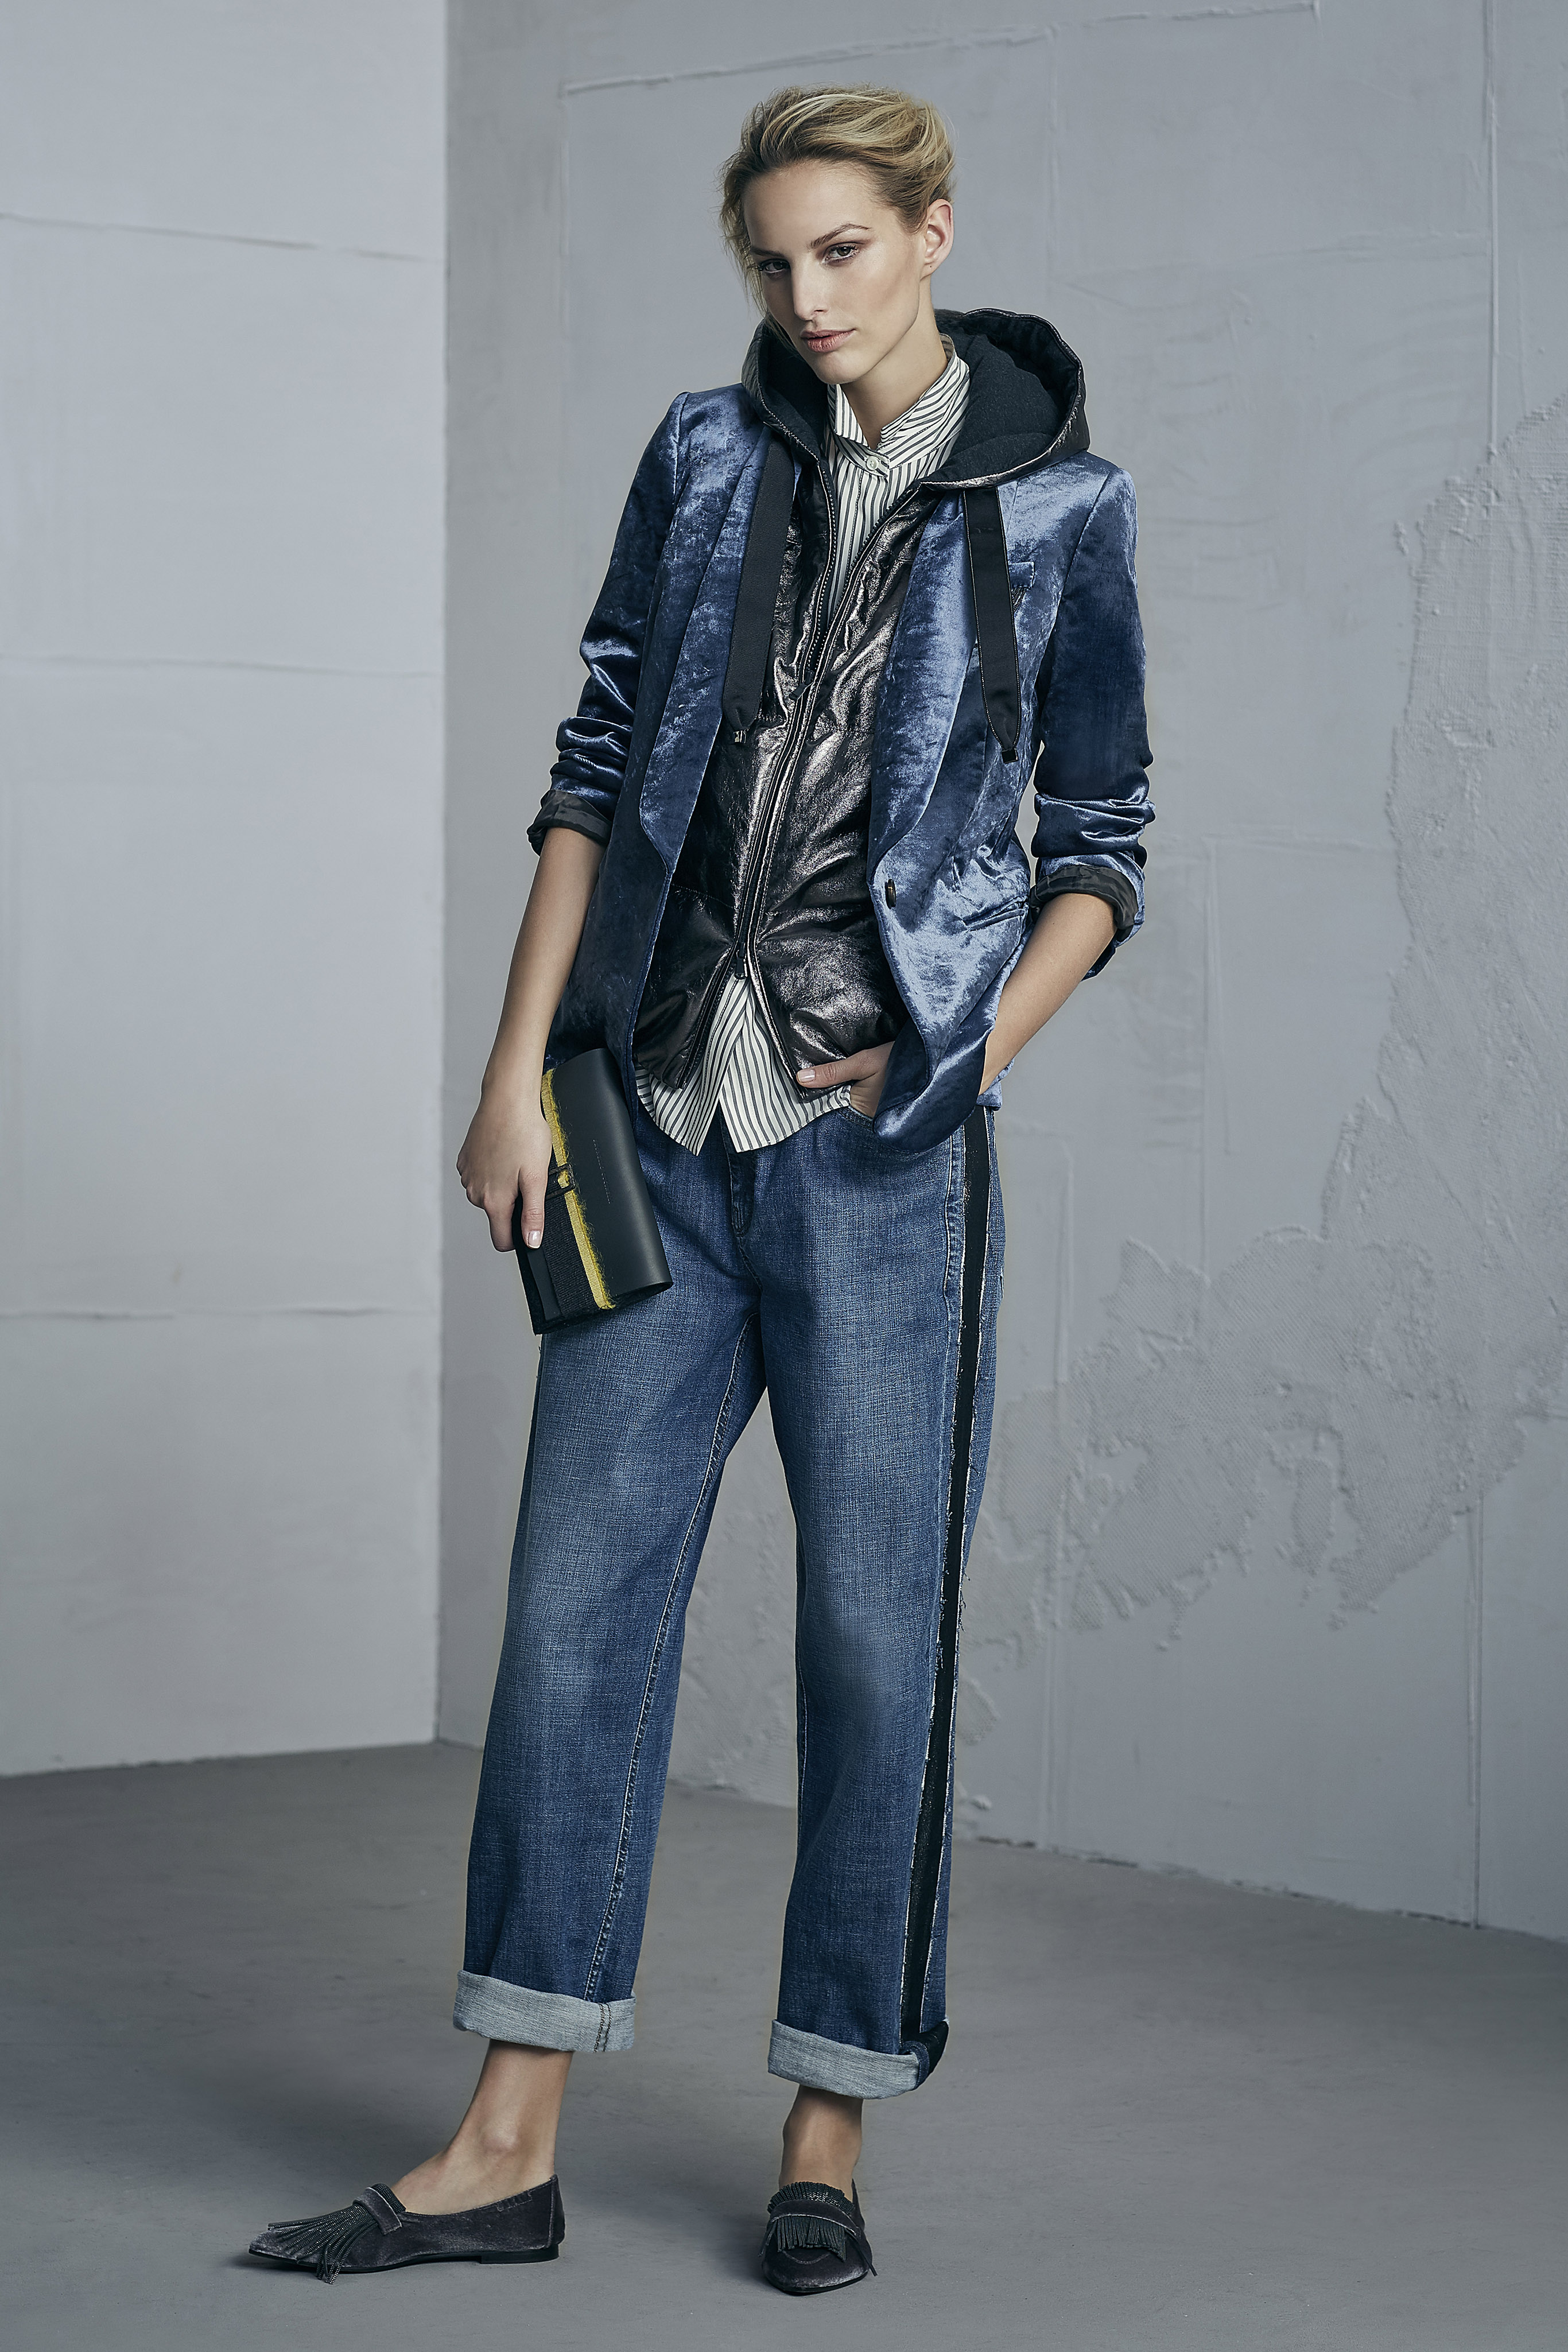 quality products factory price quality design Brunello Cucinelli AW17 women's collection: Urban Explorer